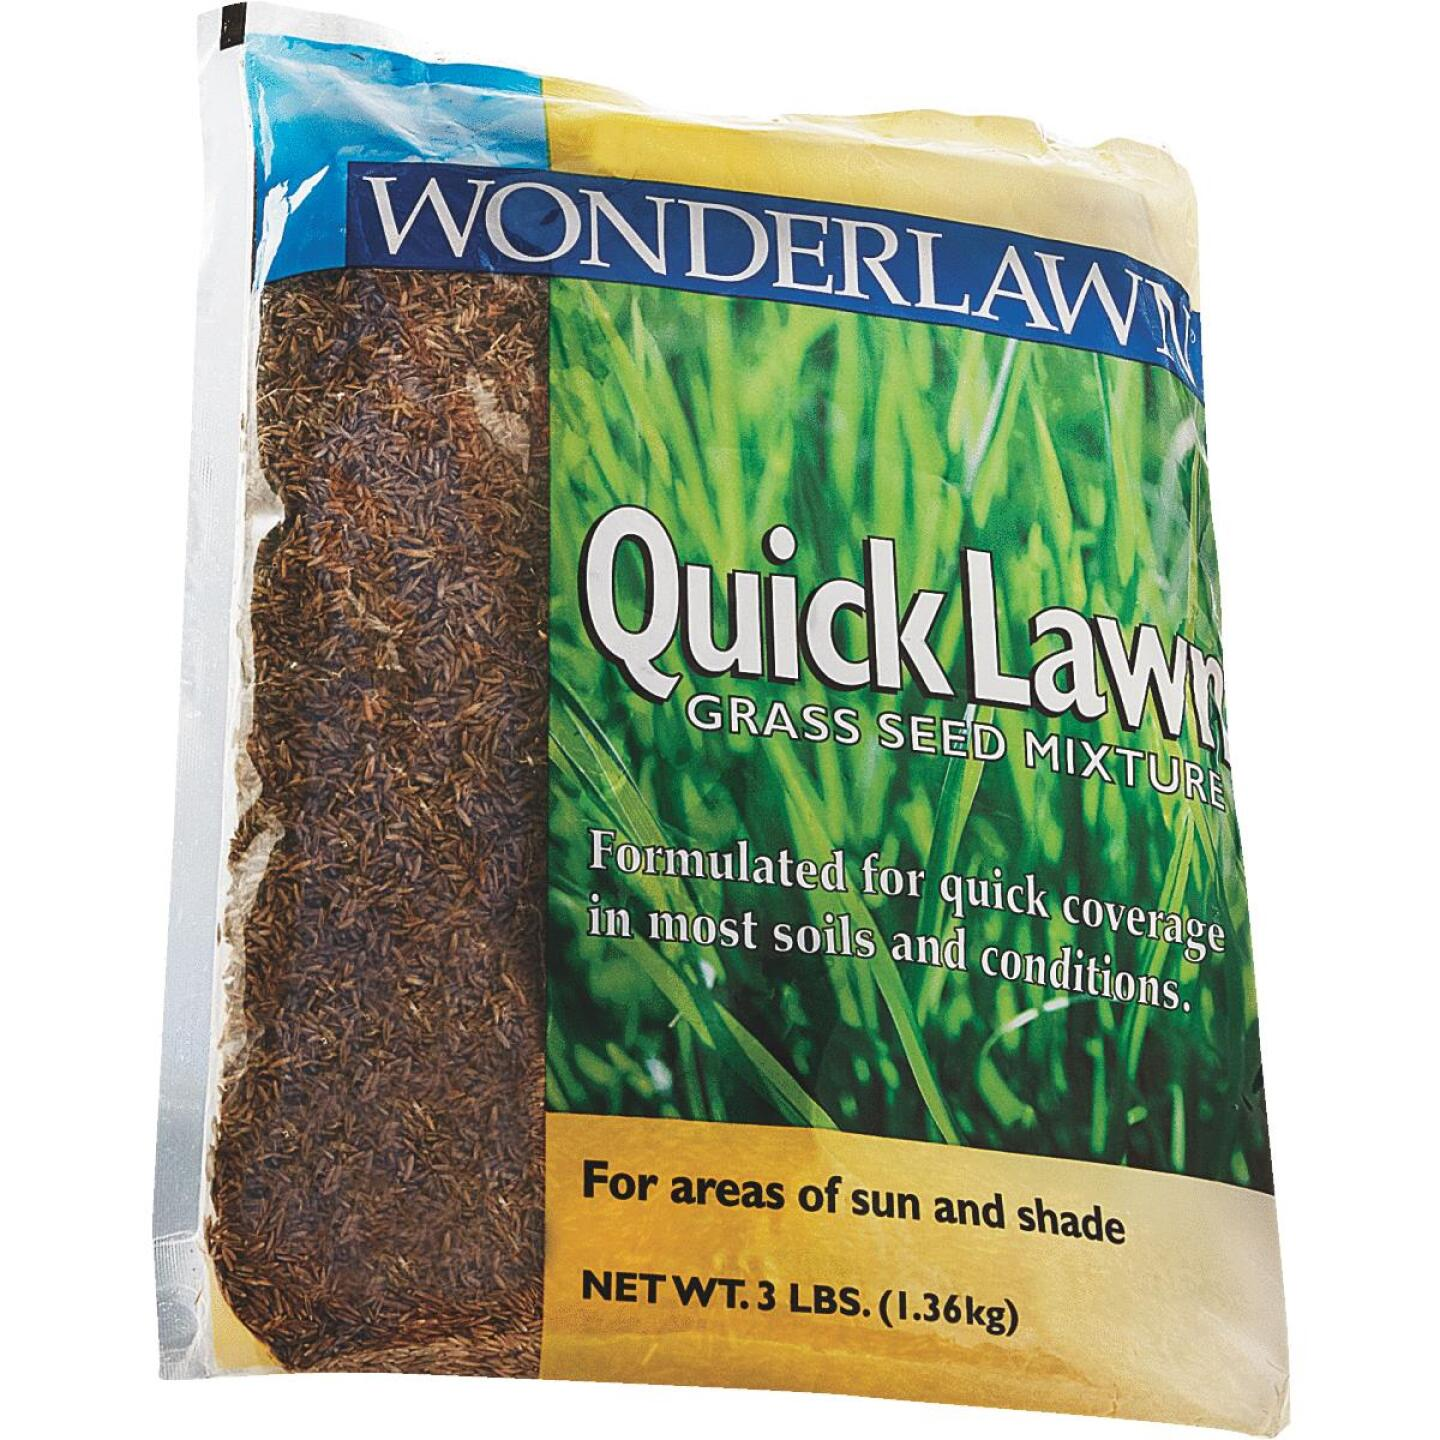 Wonderlawn Quick Lawn 3 Lb. 900 Sq. Ft. Coverage Annual & Perennial Ryegrass Grass Seed Image 4